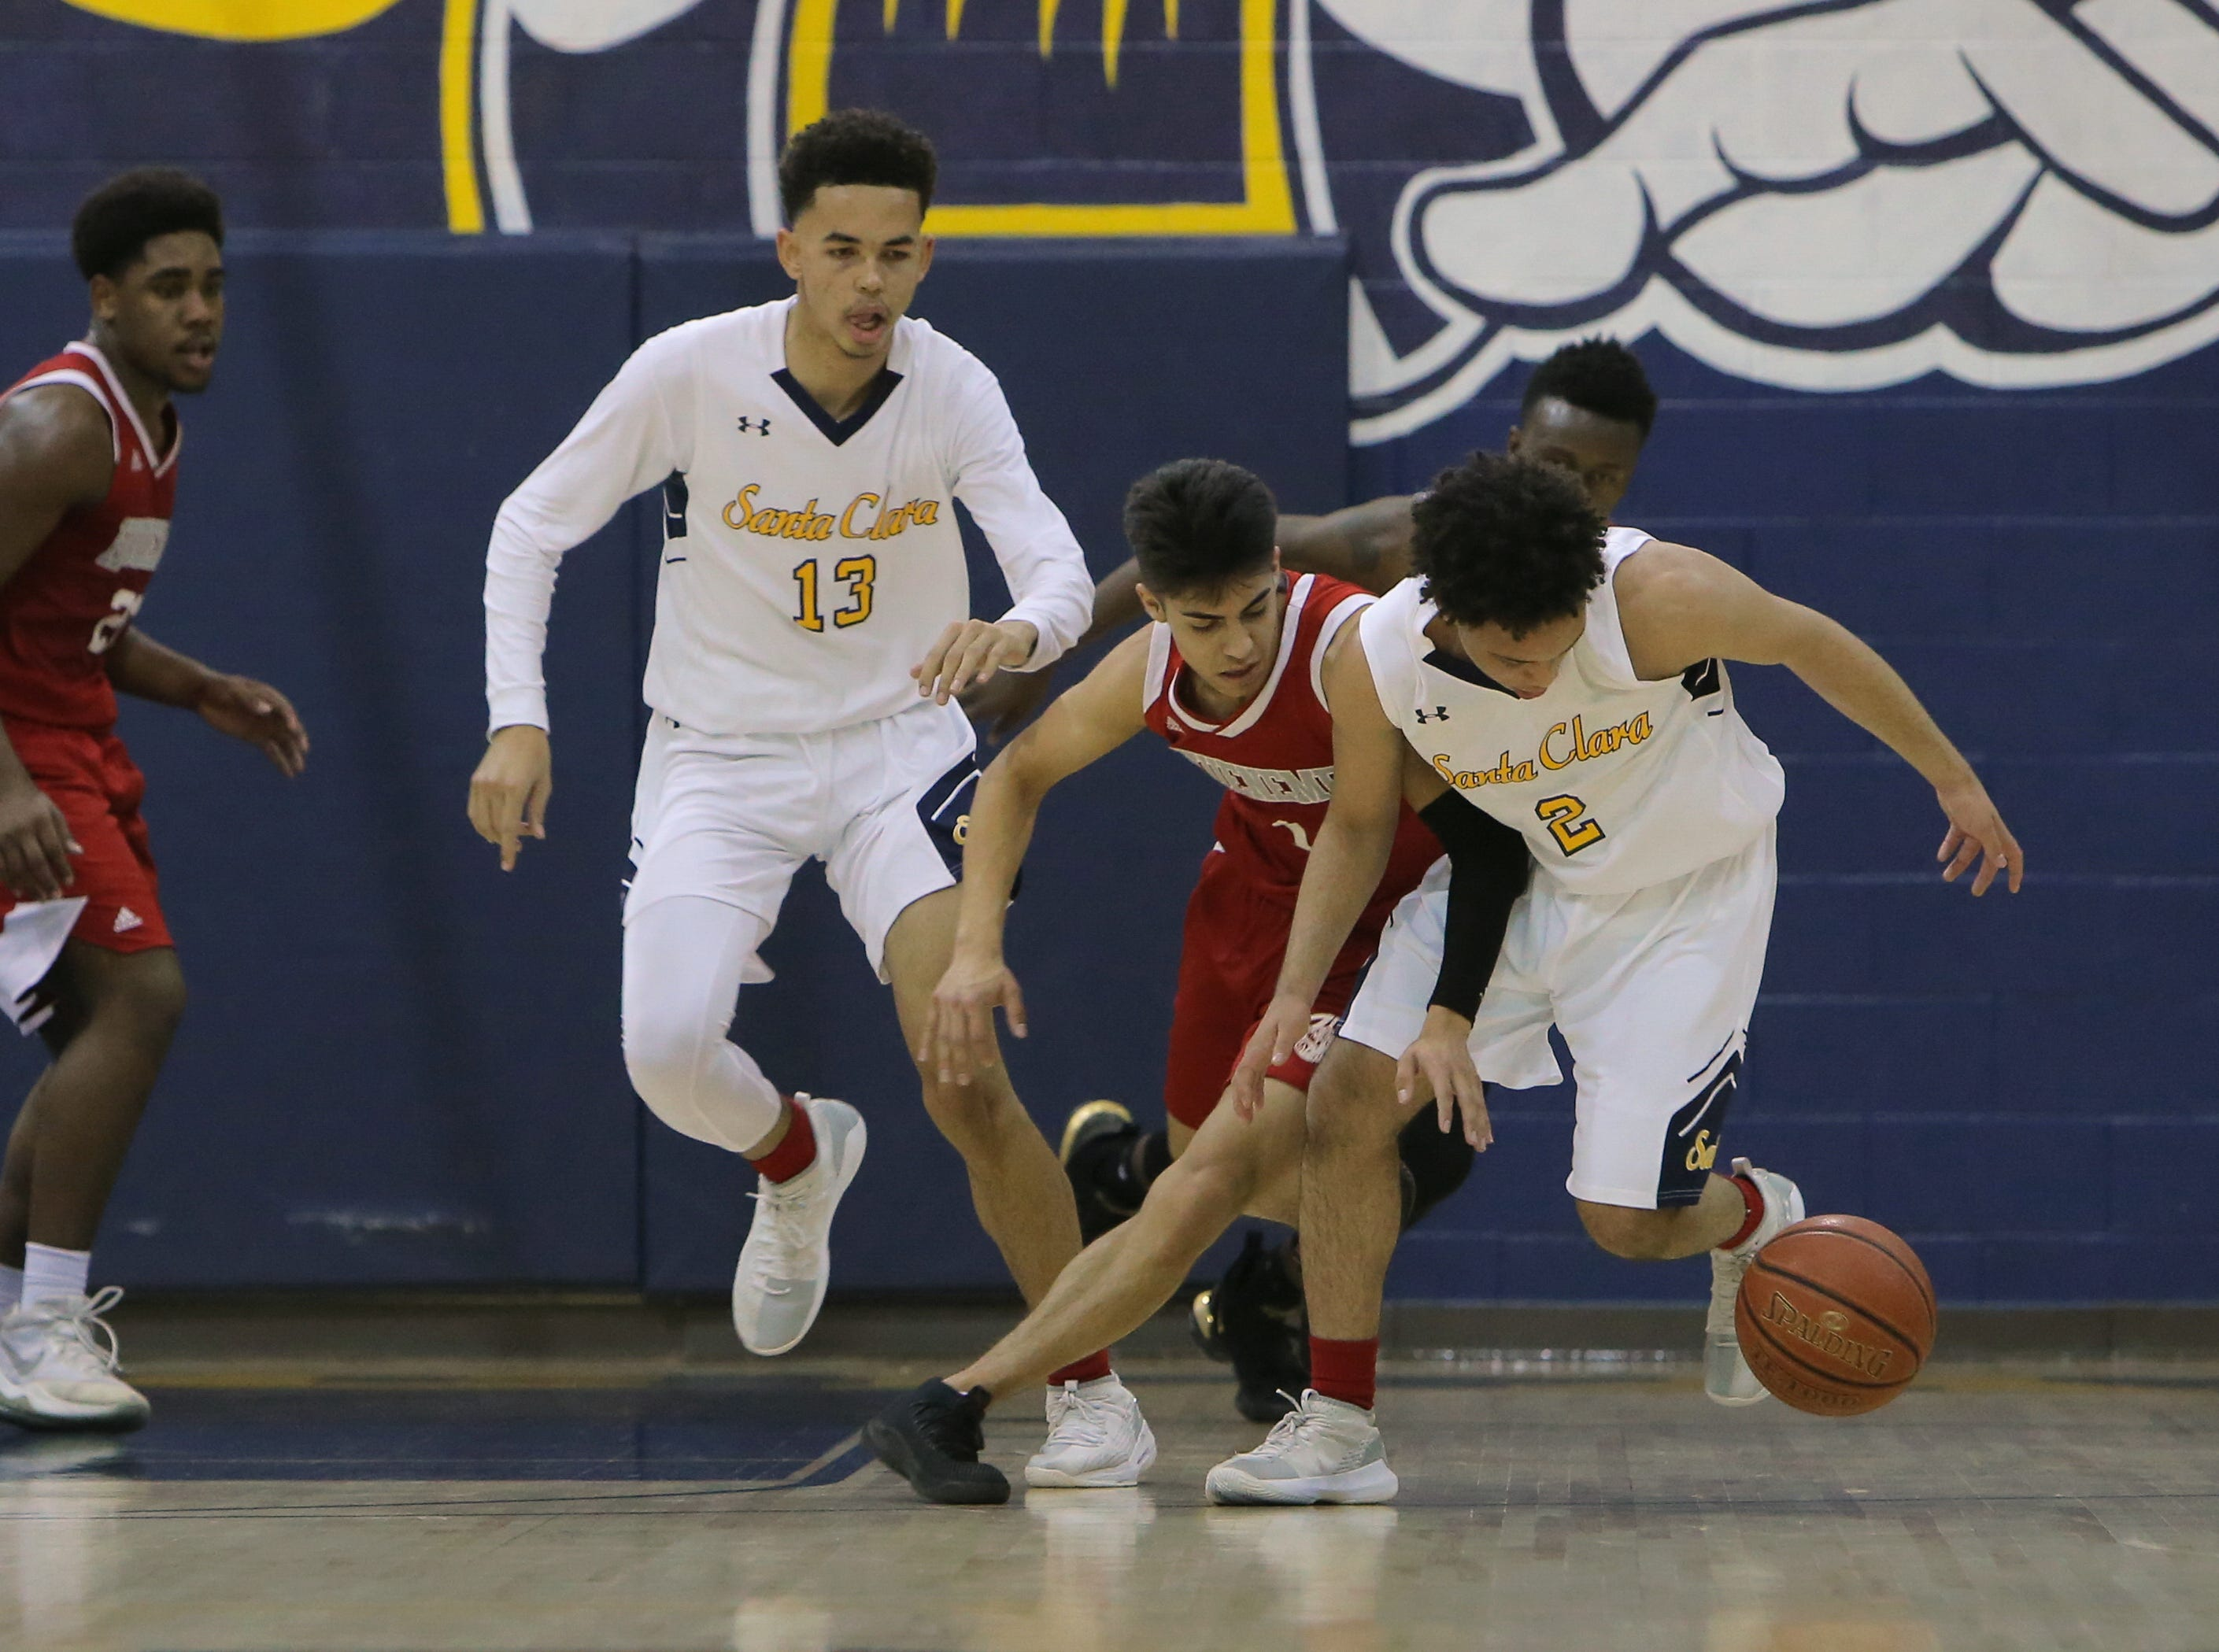 Santa Clara's Chris Mack, right, battles Hueneme's Antonio Ayala for the ball while Nick Abbott (13) looks on during  Saturday's CIF-Southern Section Division 5AA semifinal at Santa Clara High. The host Saints won 51-37.